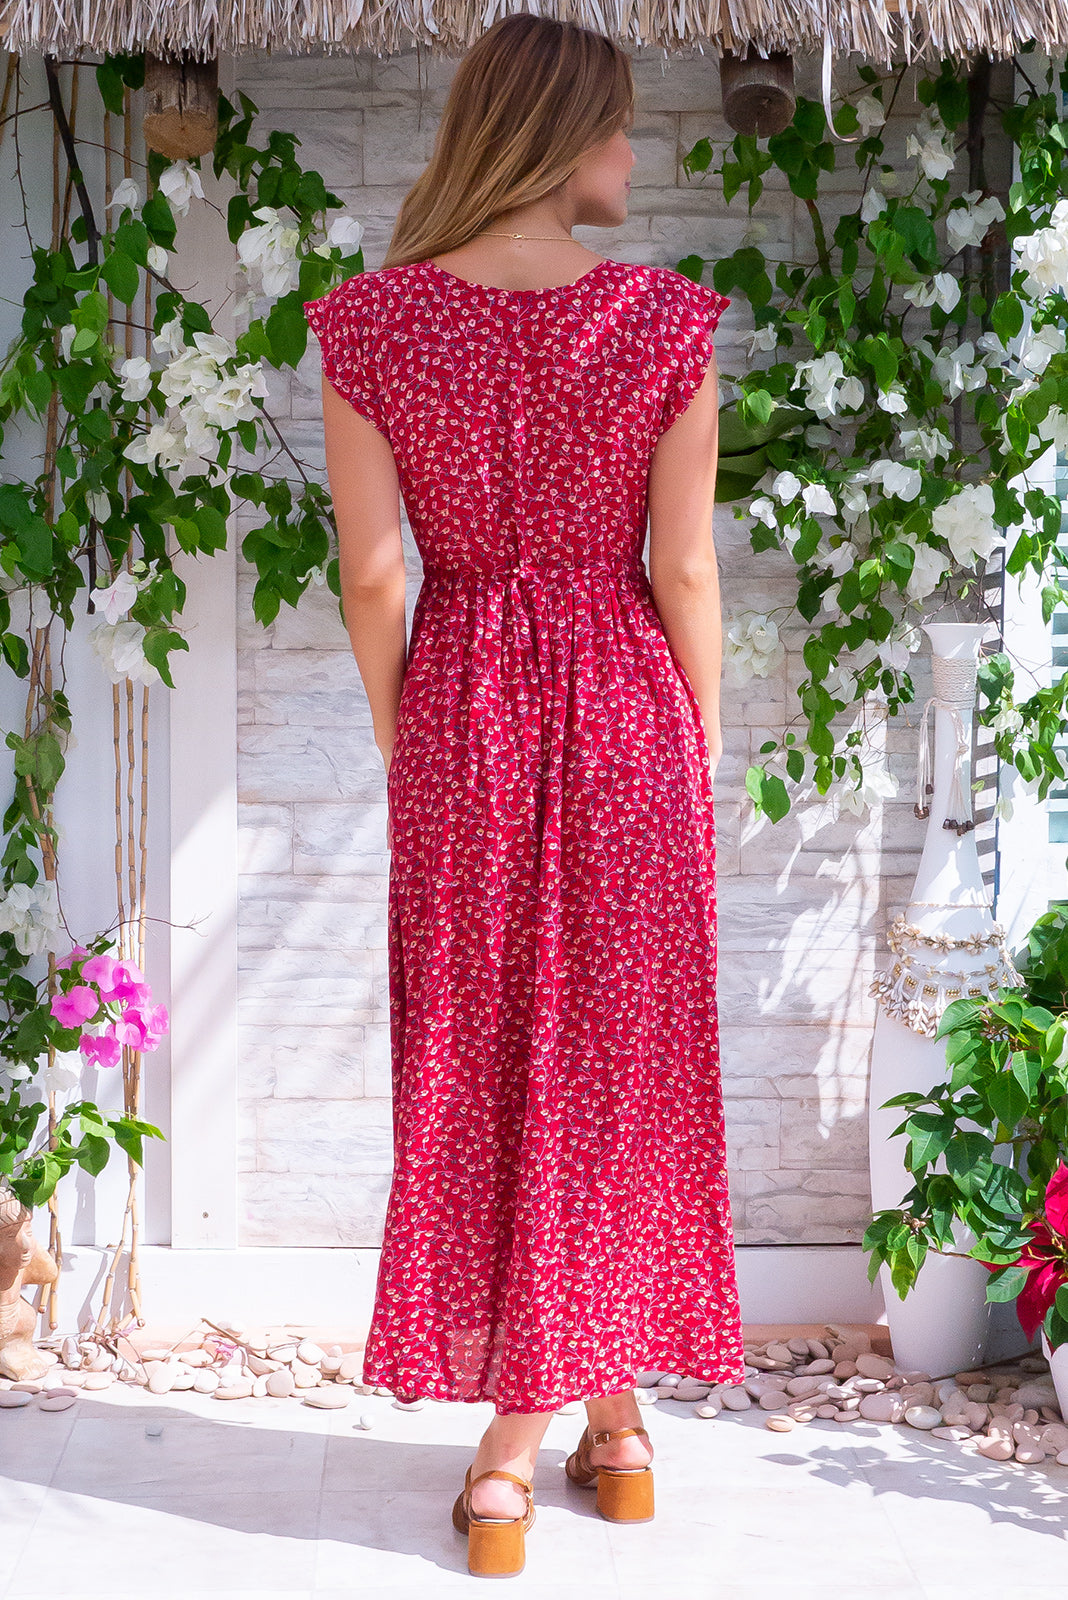 Juniper Red Earth Maxi Dress in nature-inspired floral 100% viscose fabric. Including side pockets, adjustable drawstring waist, cap sleeve, functional top buttons in deep red base with pink, white and forest green floral print.